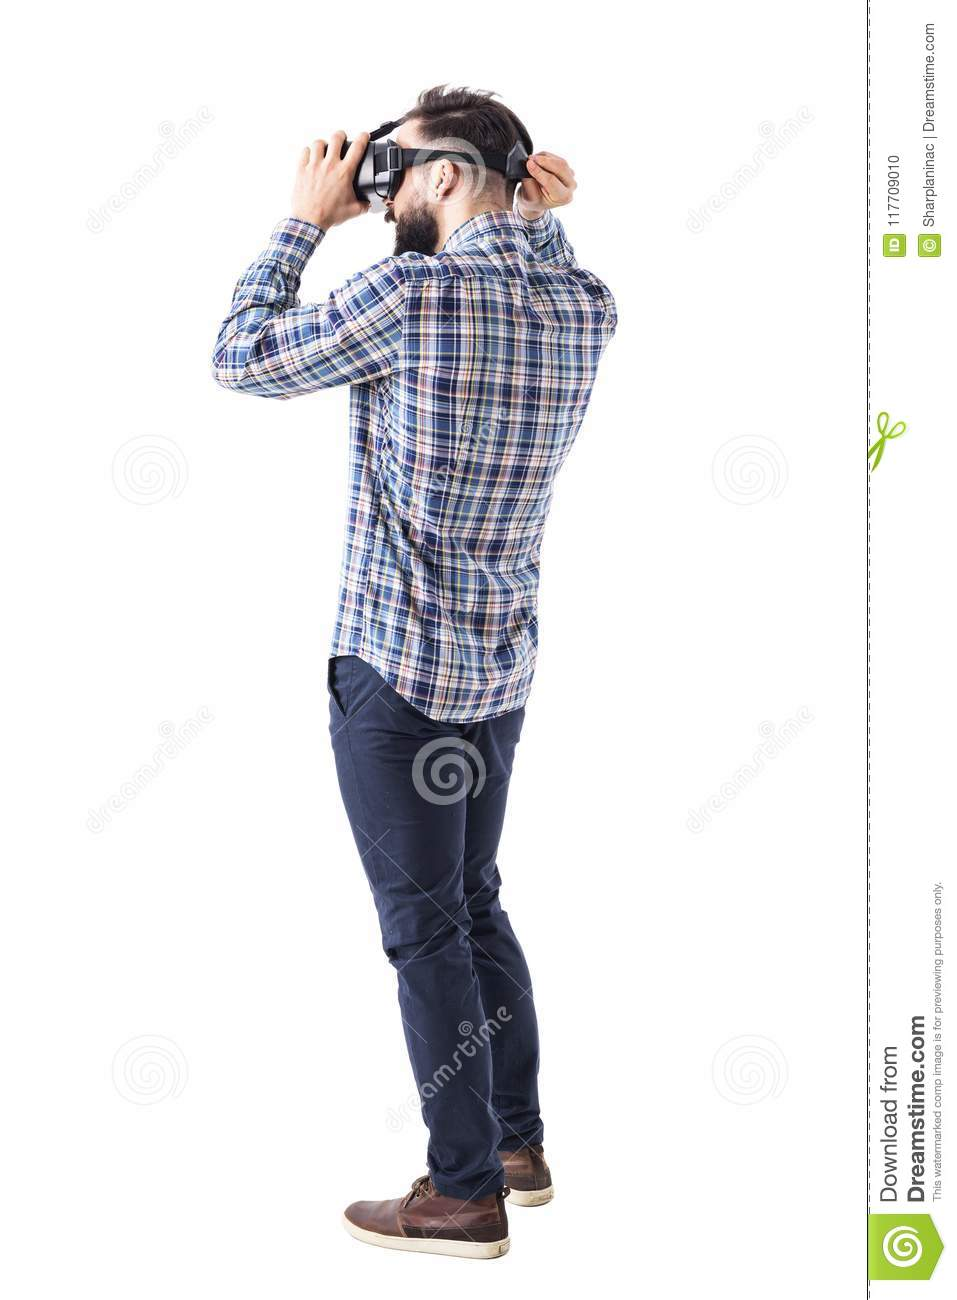 7cc3227e1531 Young bearded smart casual man putting on virtual reality glasses headset  on head. Full body isolated on white background.